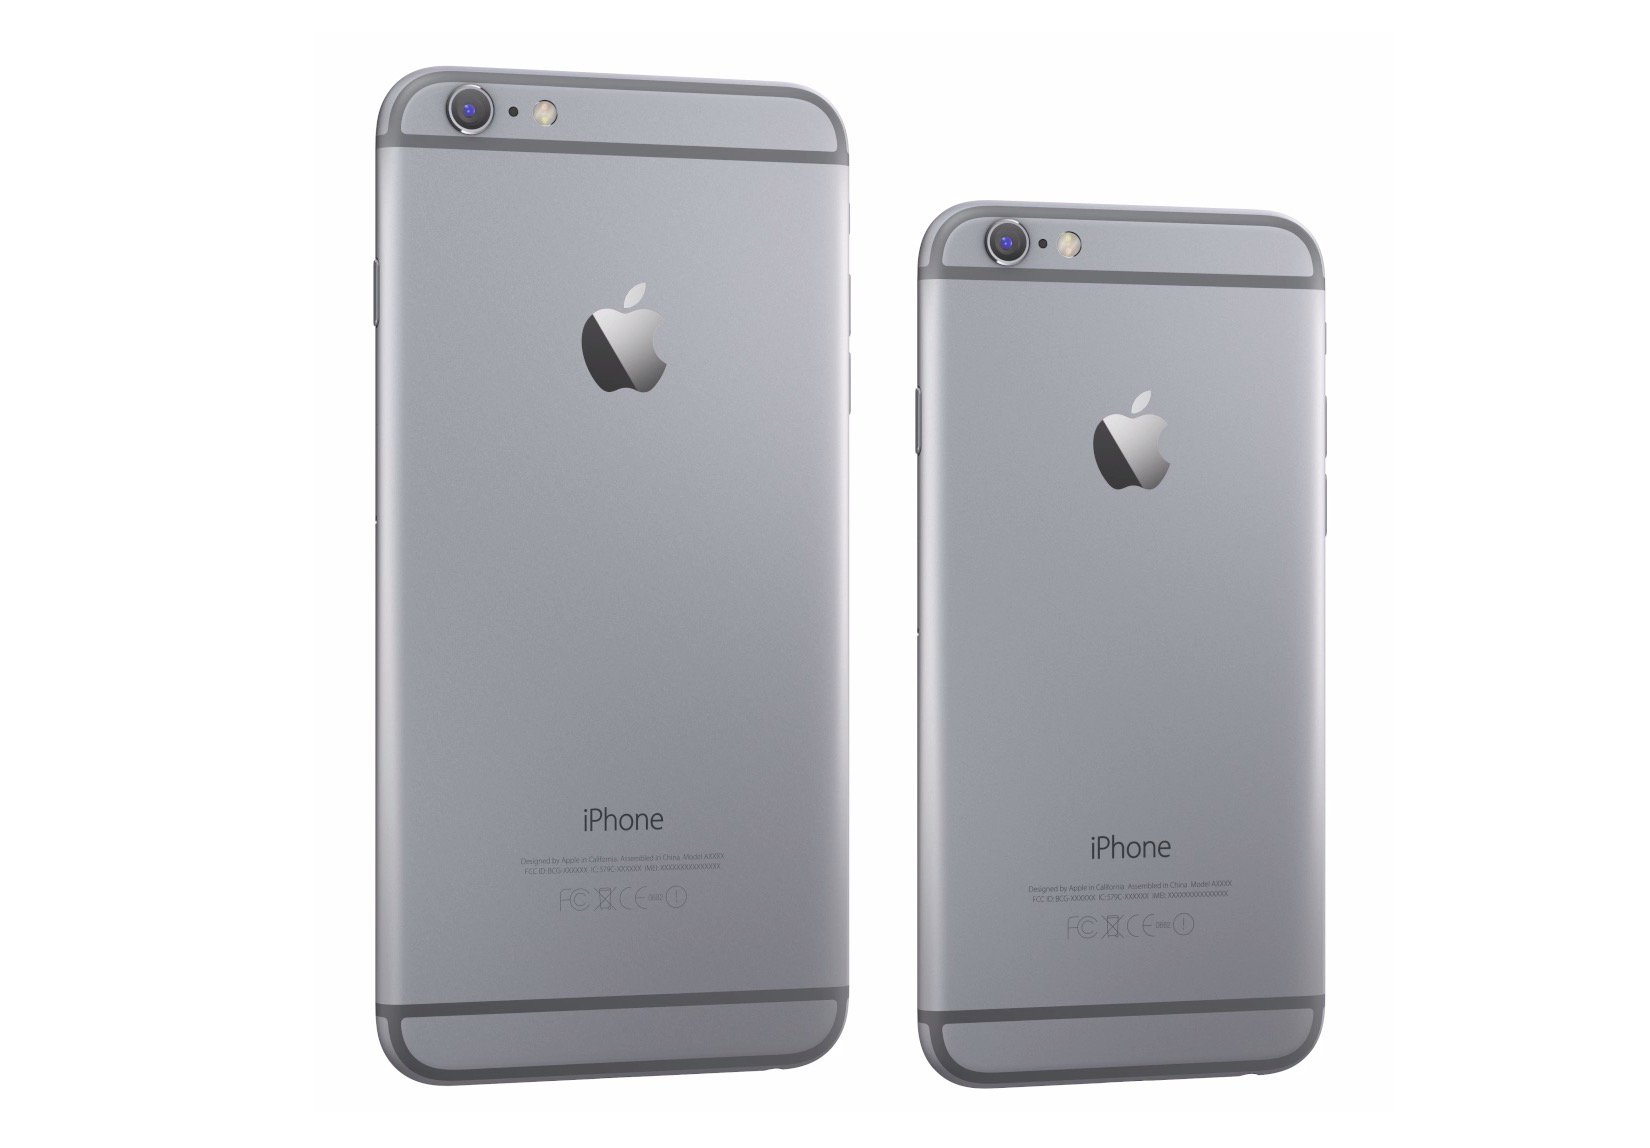 iphone 6 vs iphone 4 5 things buyers need to know. Black Bedroom Furniture Sets. Home Design Ideas